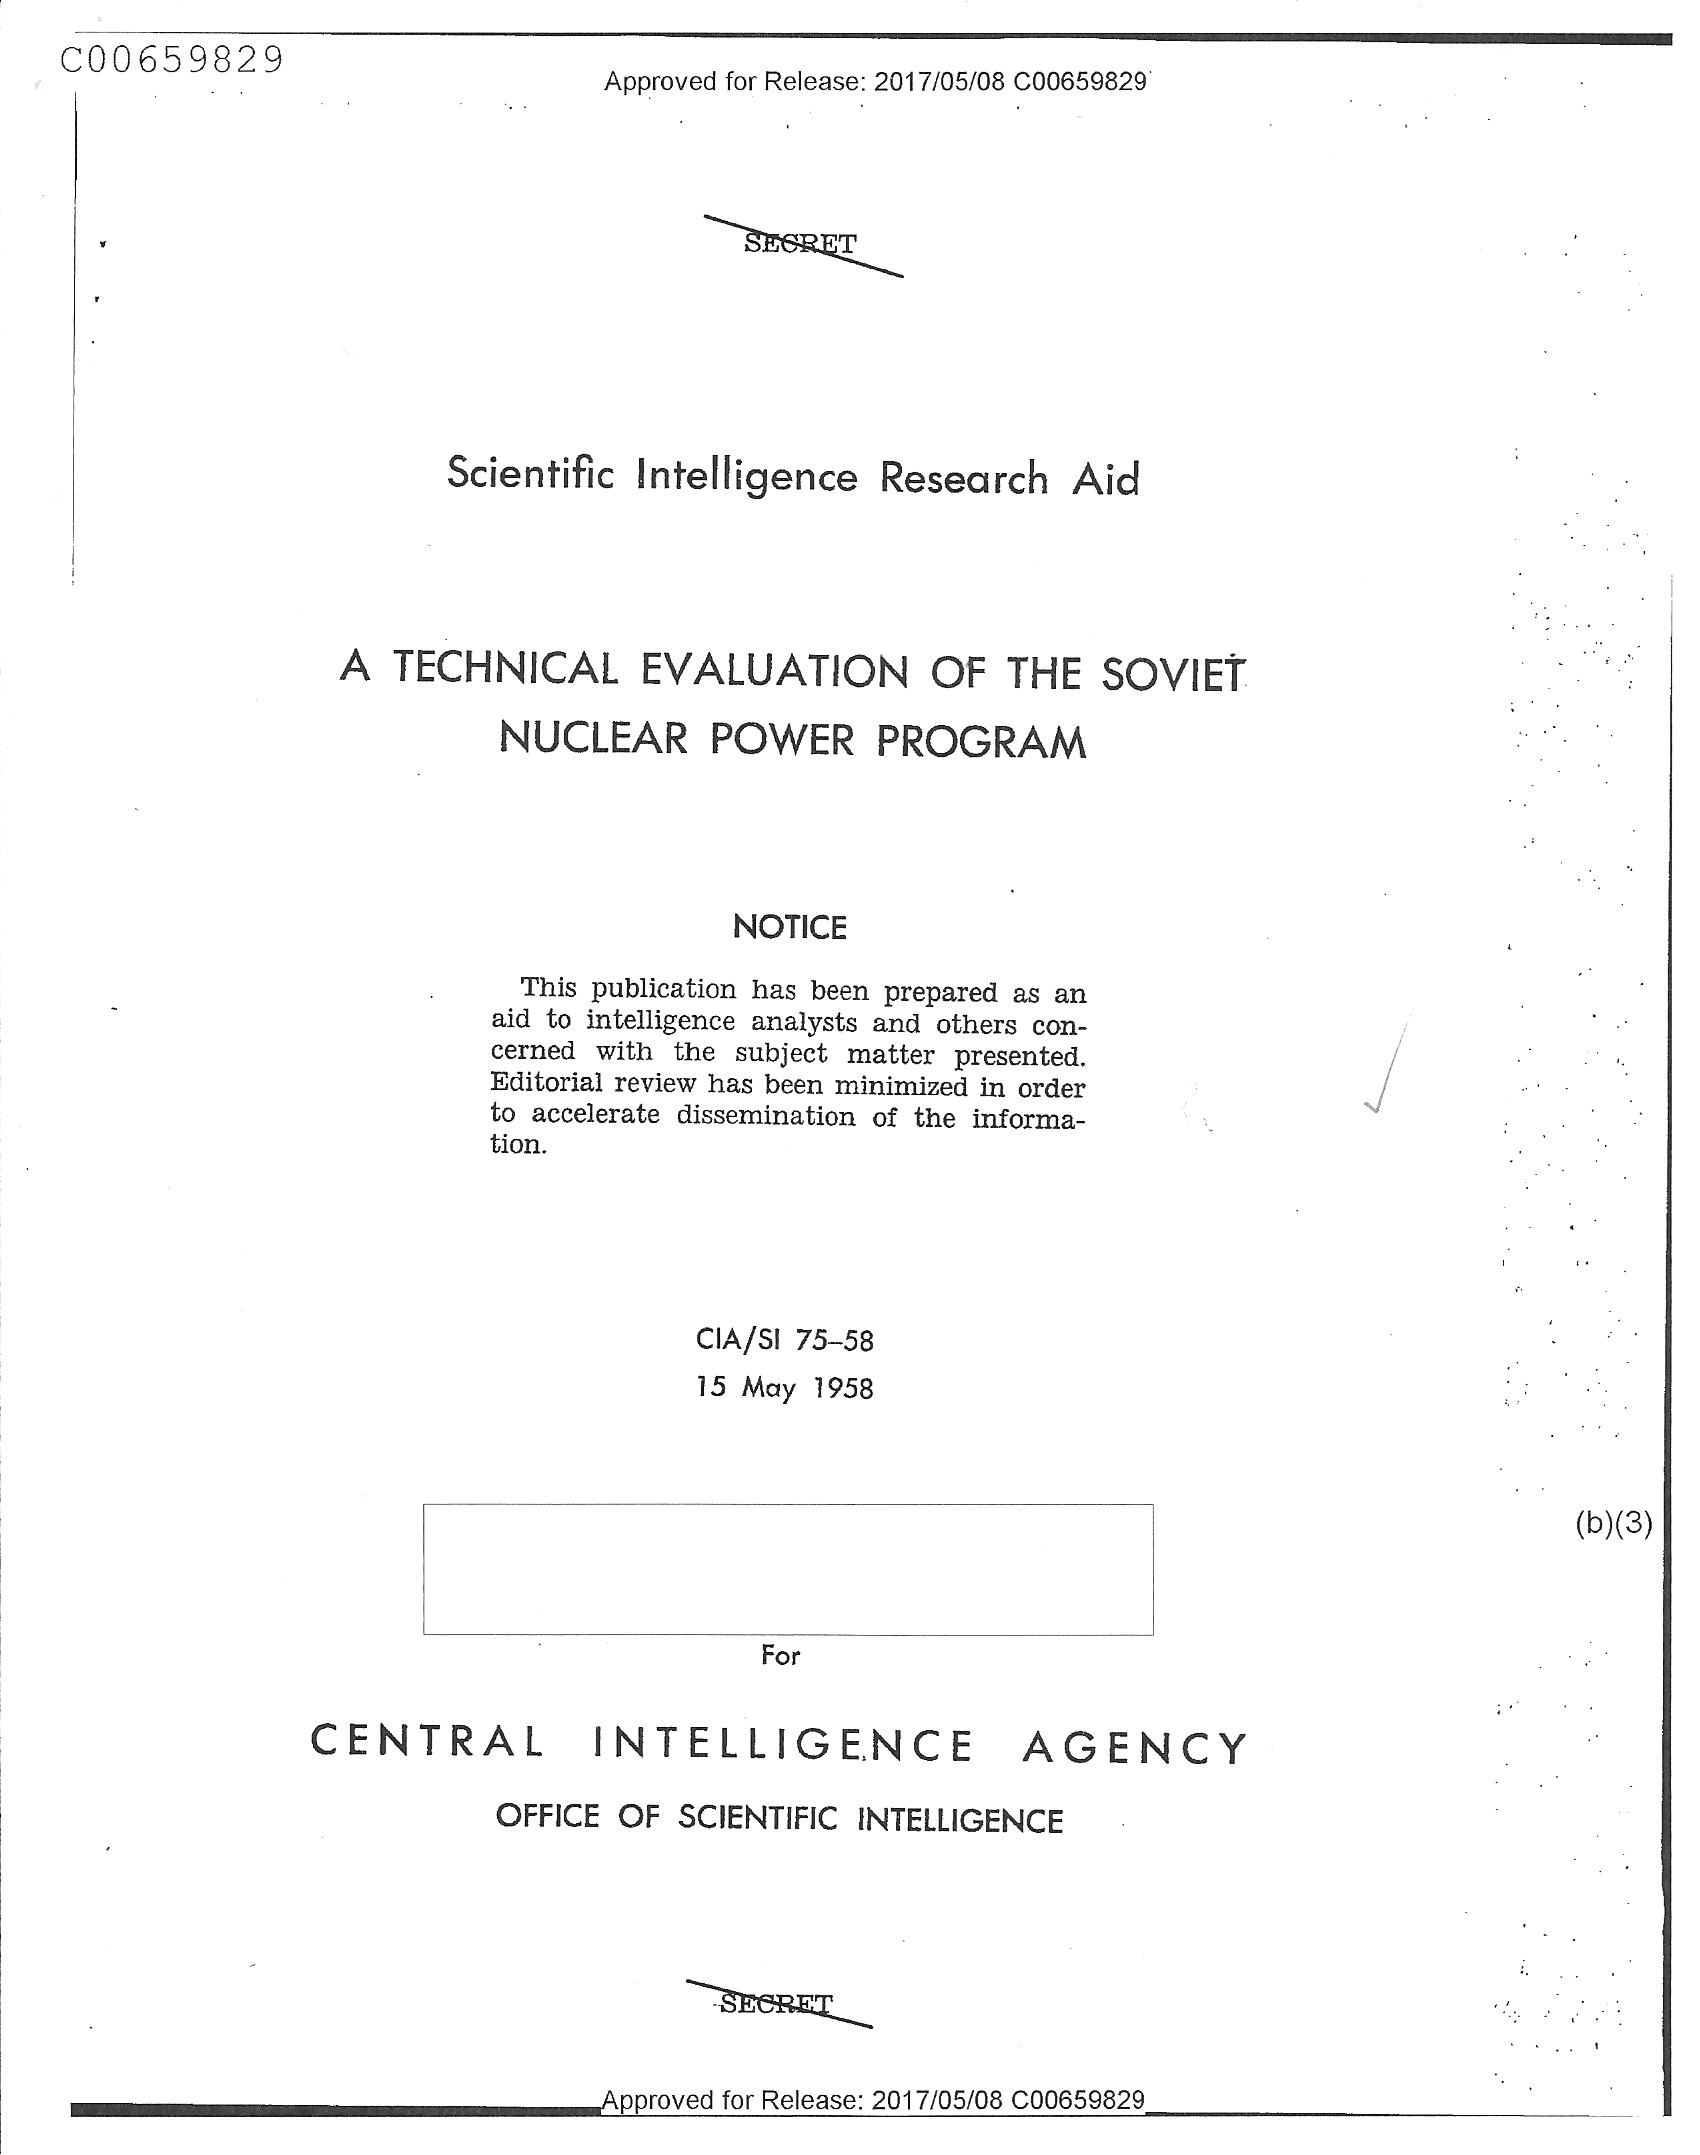 A Technical Evaluation of the Soviet Nuclear Power Program.jpg